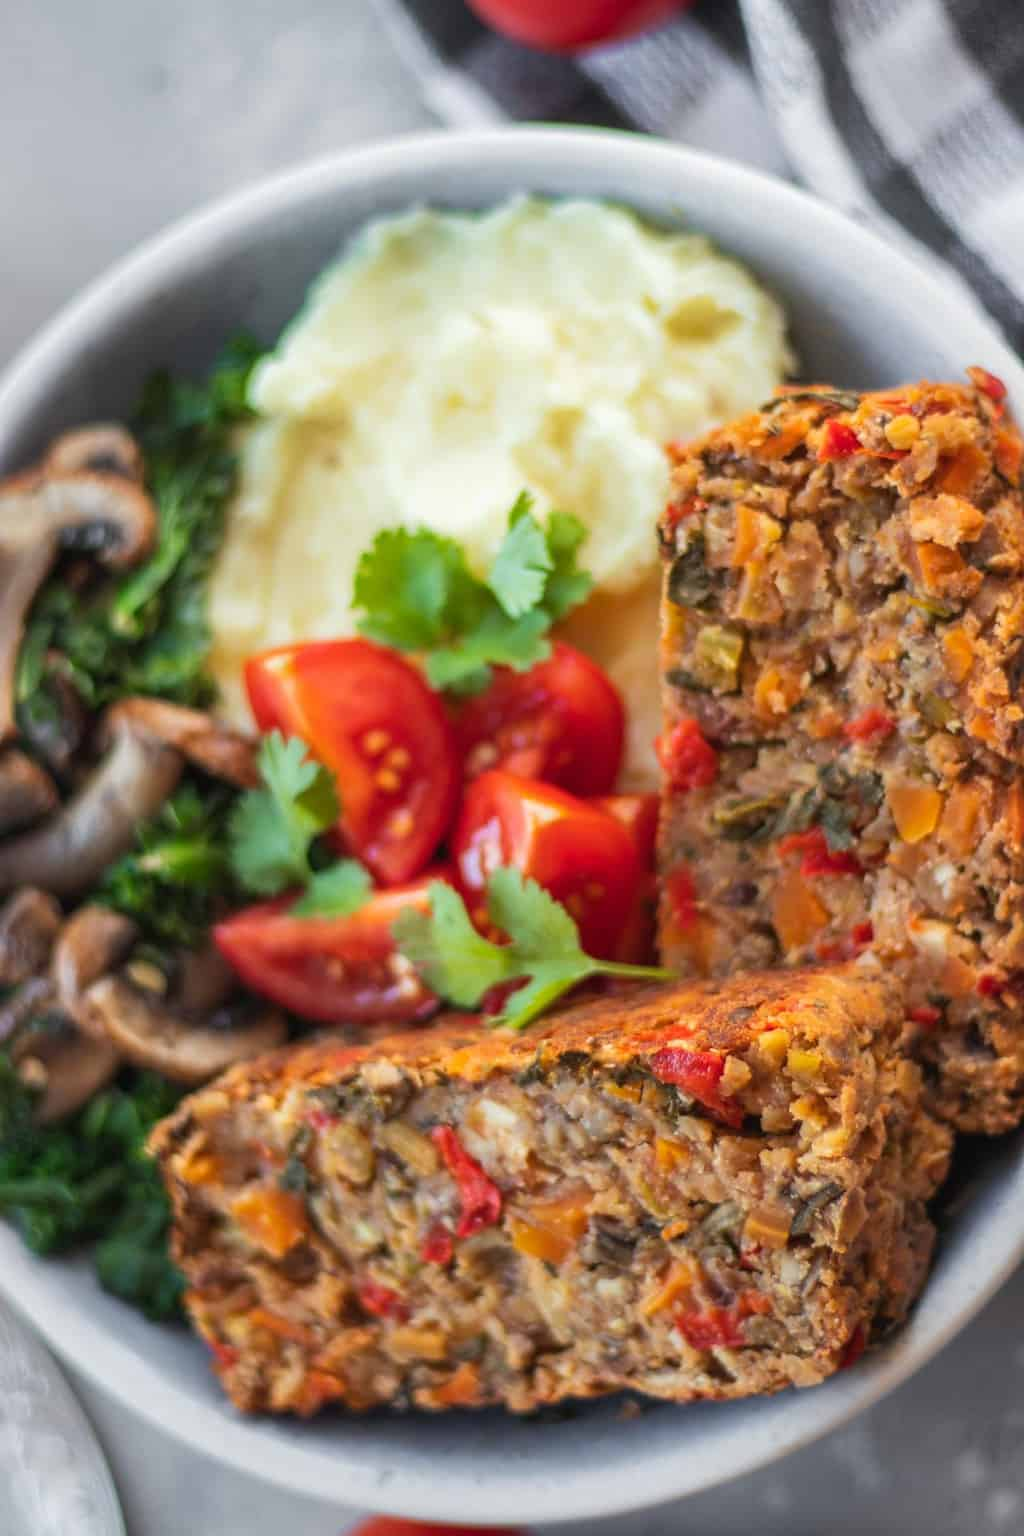 Nut-free gluten-free vegan lentil loaf for Christmas or Thanksgiving